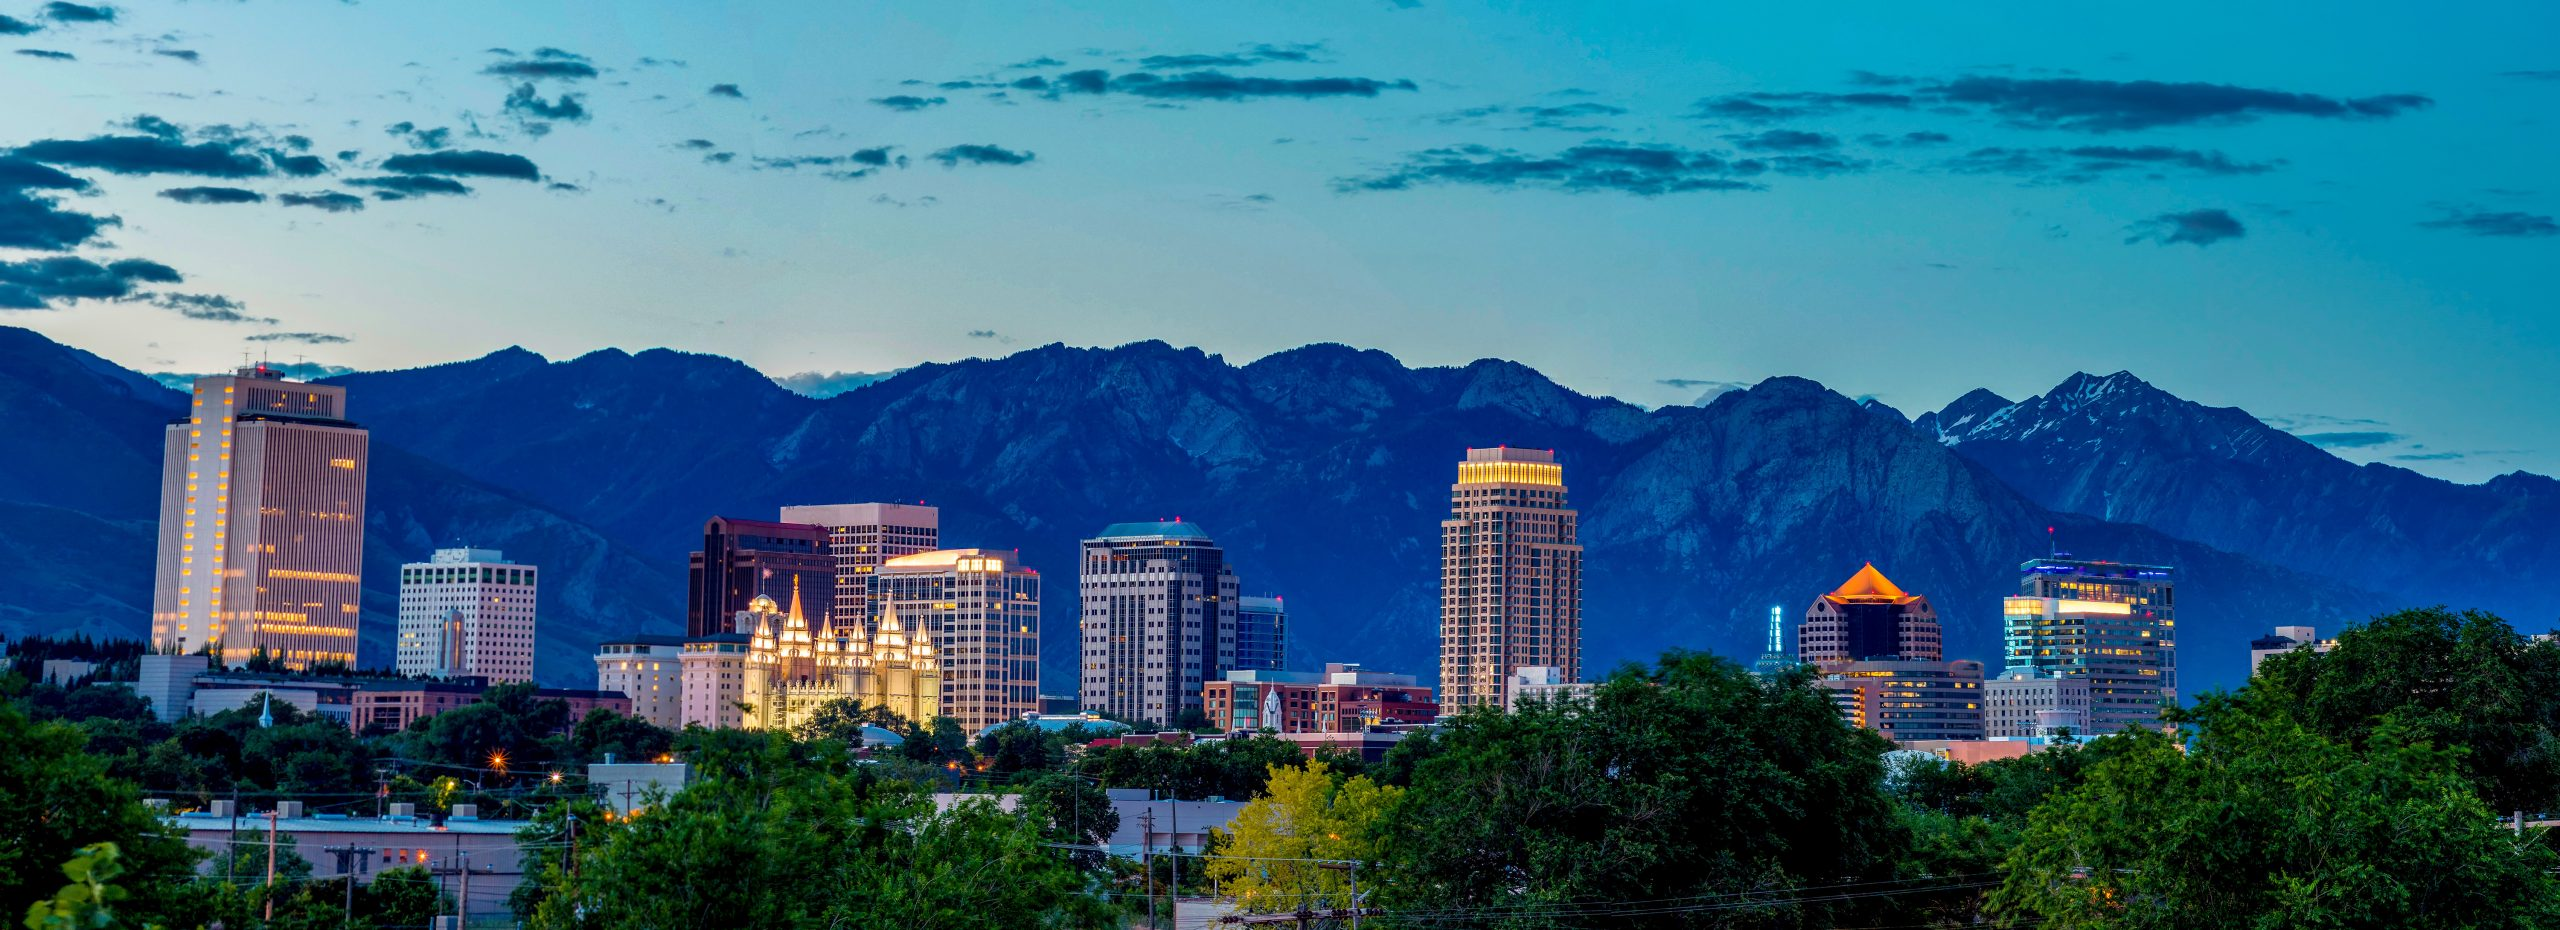 Salt Lake City Skyline with Mountains in distance